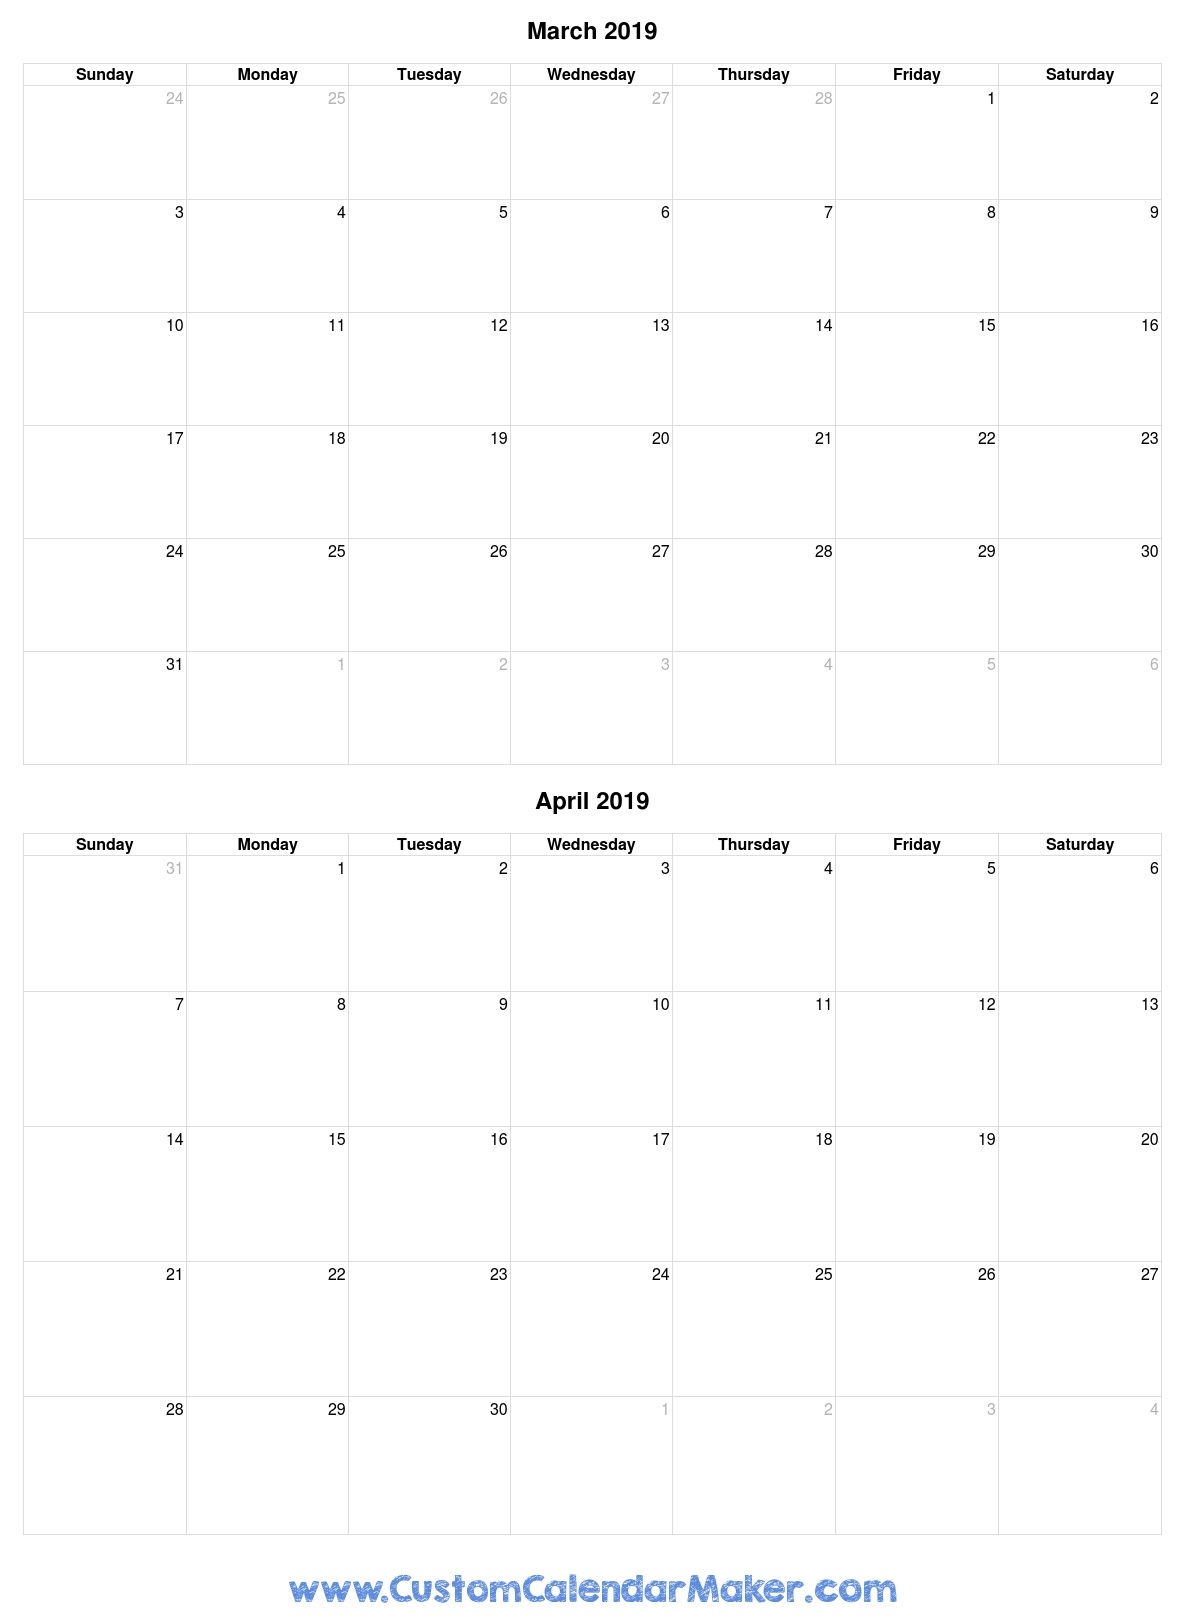 Template Calendar March And April 2019